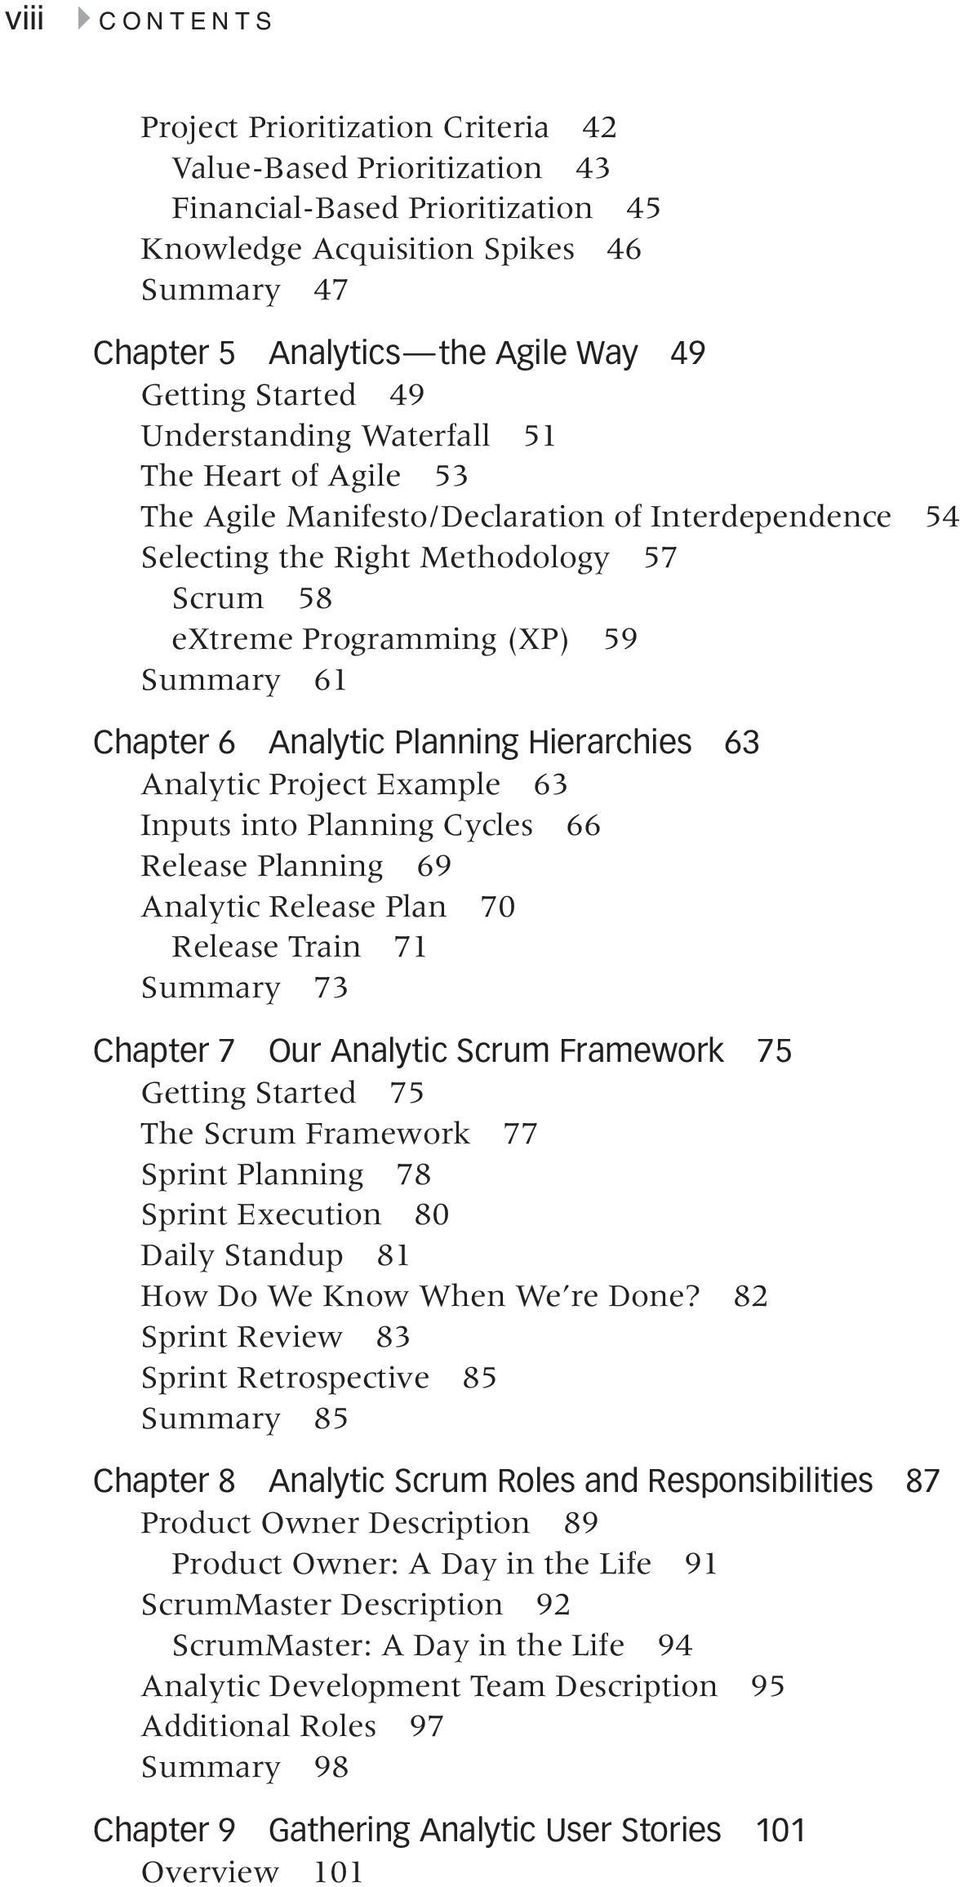 Summary 61 Chapter 6 Analytic Planning Hierarchies 63 Analytic Project Example 63 Inputs into Planning Cycles 66 Release Planning 69 Analytic Release Plan 70 Release Train 71 Summary 73 Chapter 7 Our